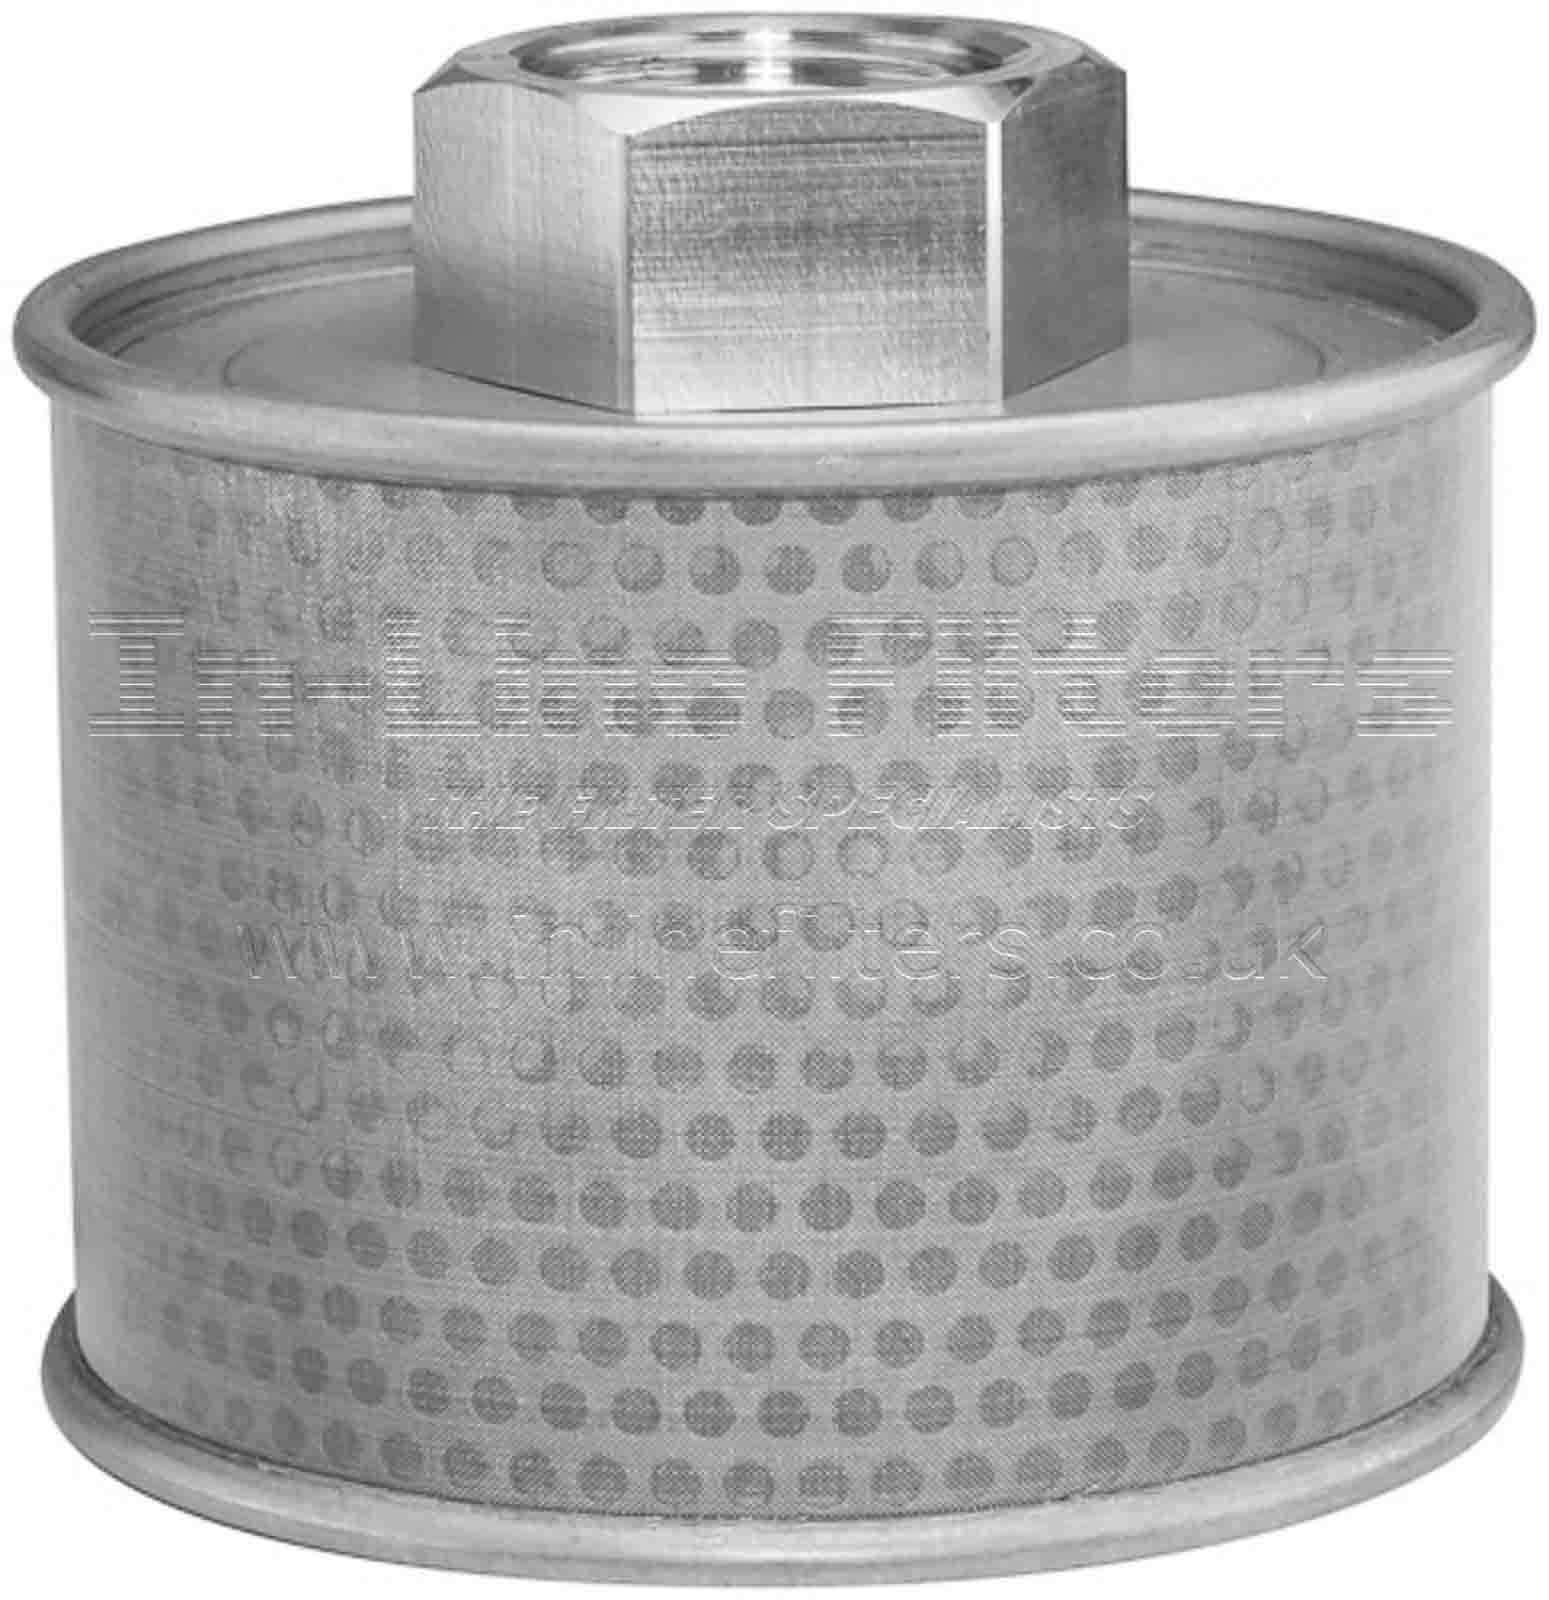 FBW-PT23535 FILTER-Hydraulic(Brand Specific-Baldwin PT23535) - Click Image to Close